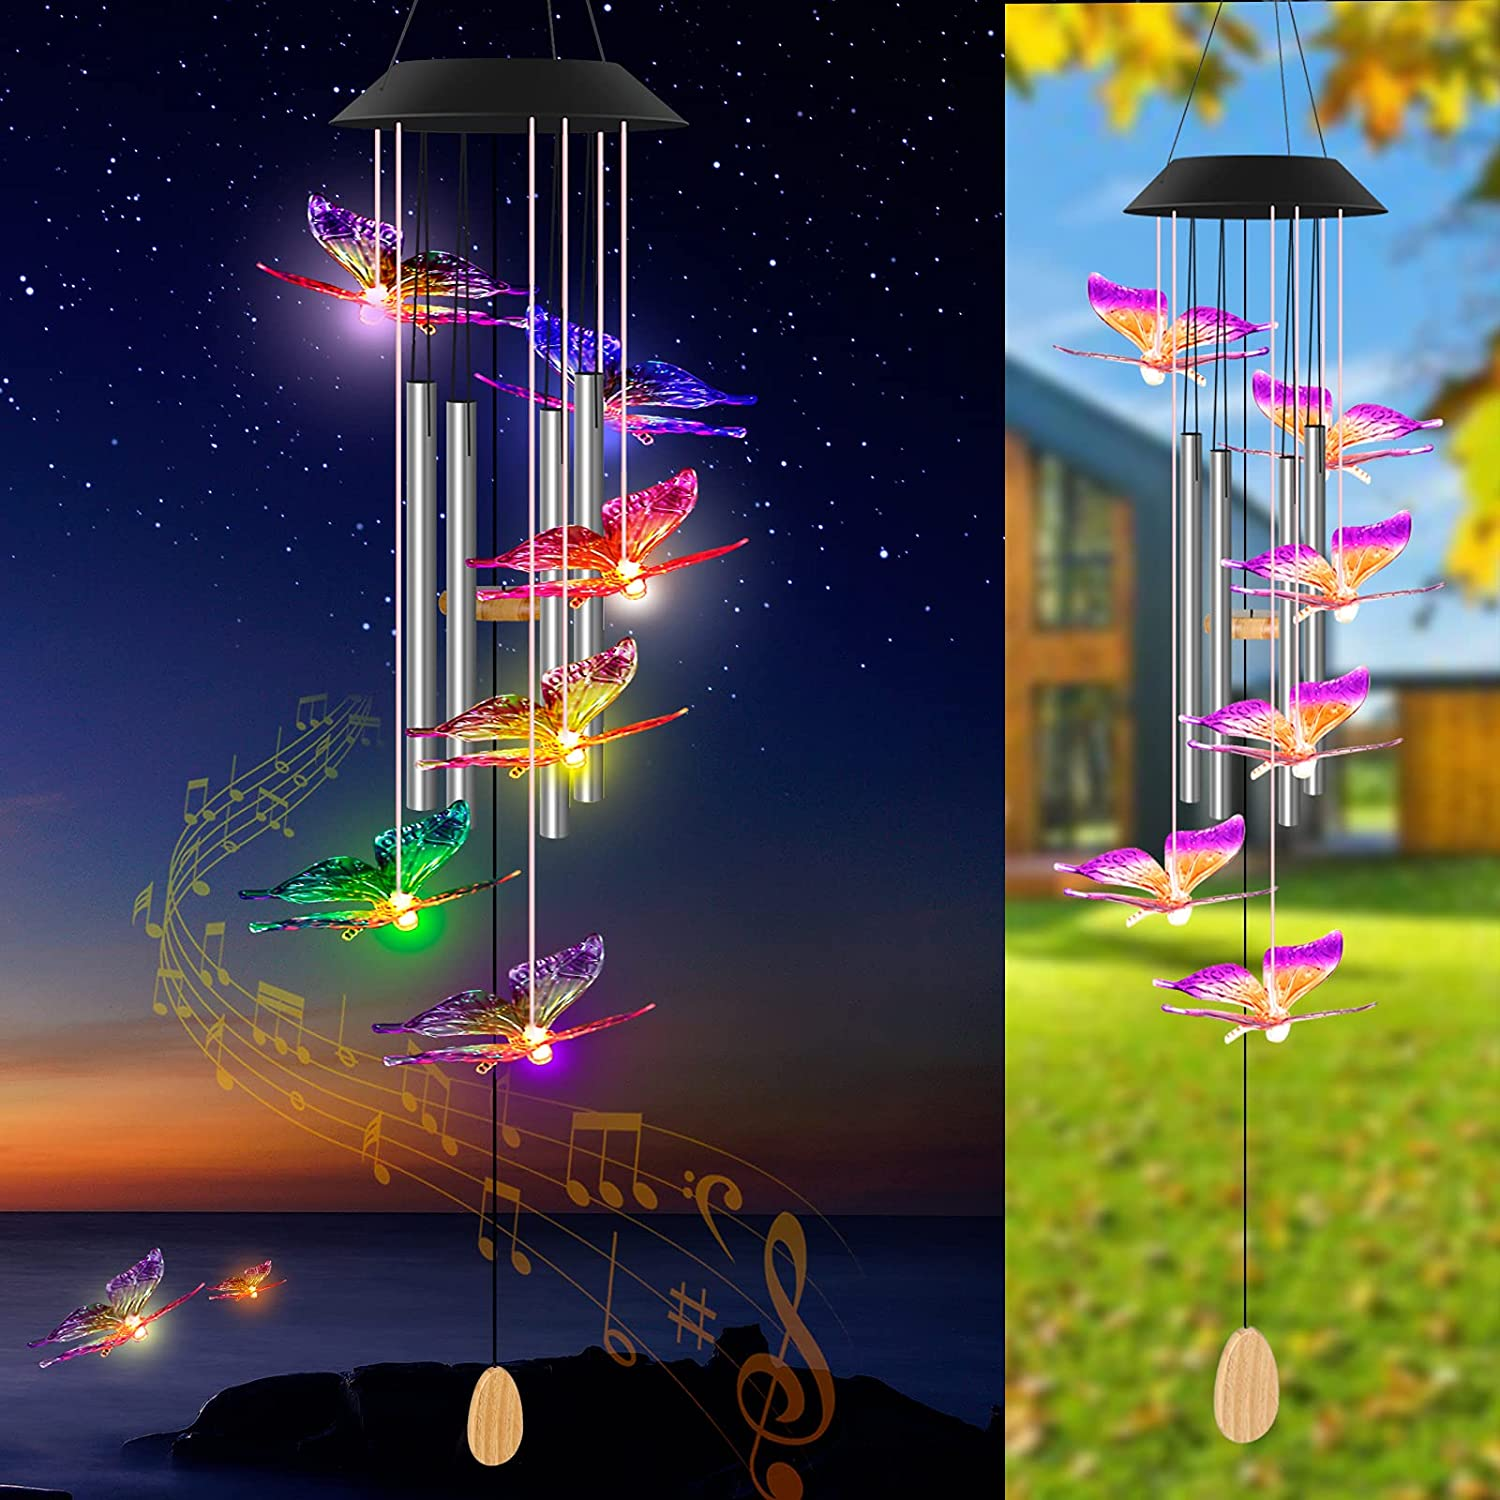 Solar Wind Chimes Outdoors, Waterproof Butterfly Solar Wind Chime Colors Changing Led Lights, Music Tubes and Wish Pendant, Butterflies Decor Gift for Women, Outdoor Decor for Garden Patio Party